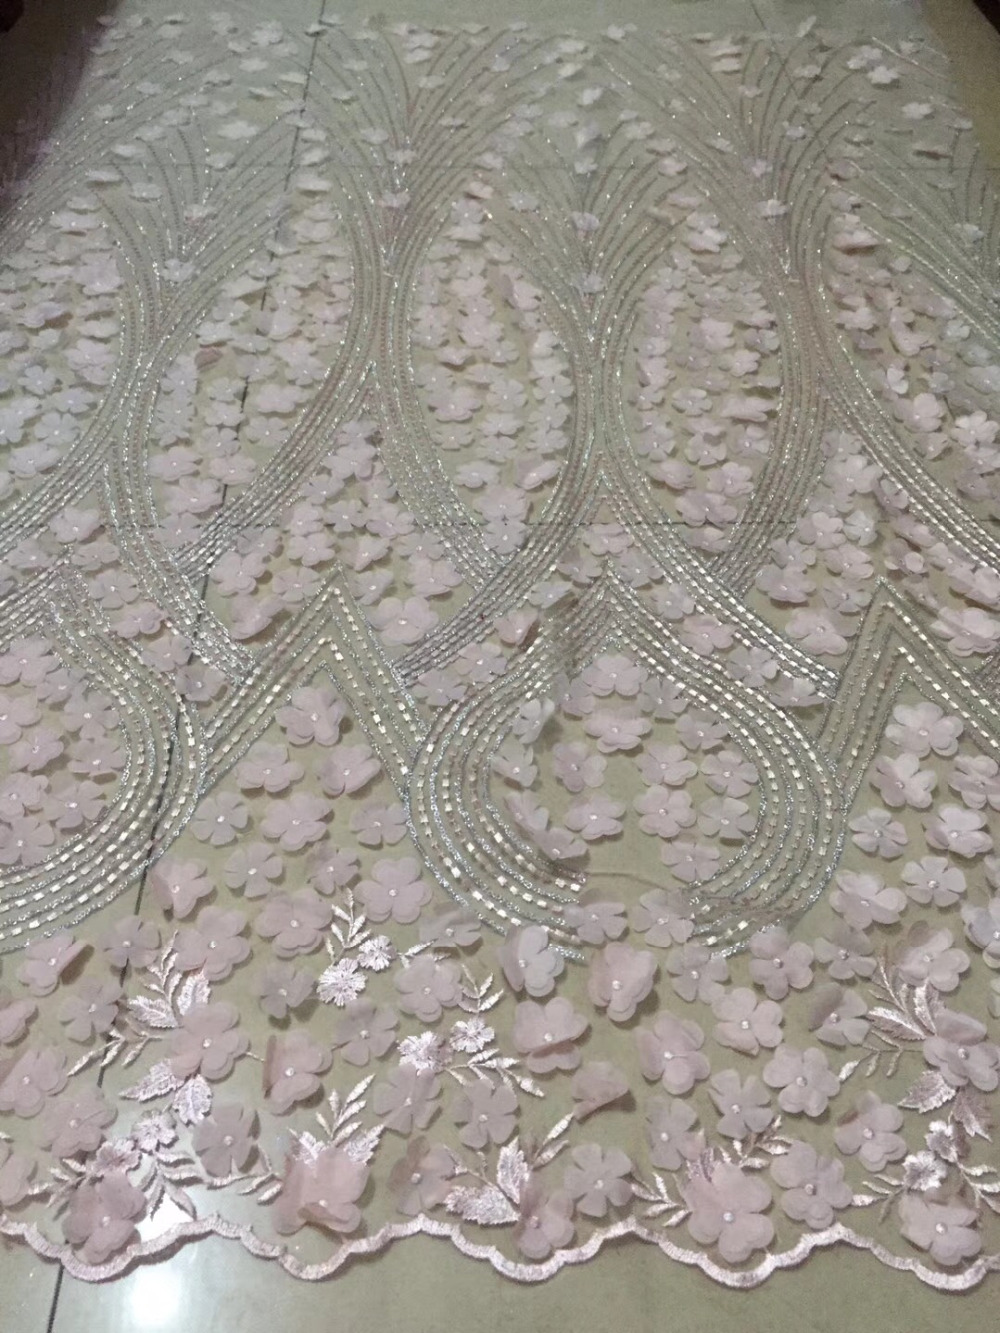 Forceful Novelty 3d French Lace With Handwork Multilayer Applique 5 Yards/lot 2018 Latest Design African Lace Fabric For Party Dress Cdf Lace Arts,crafts & Sewing